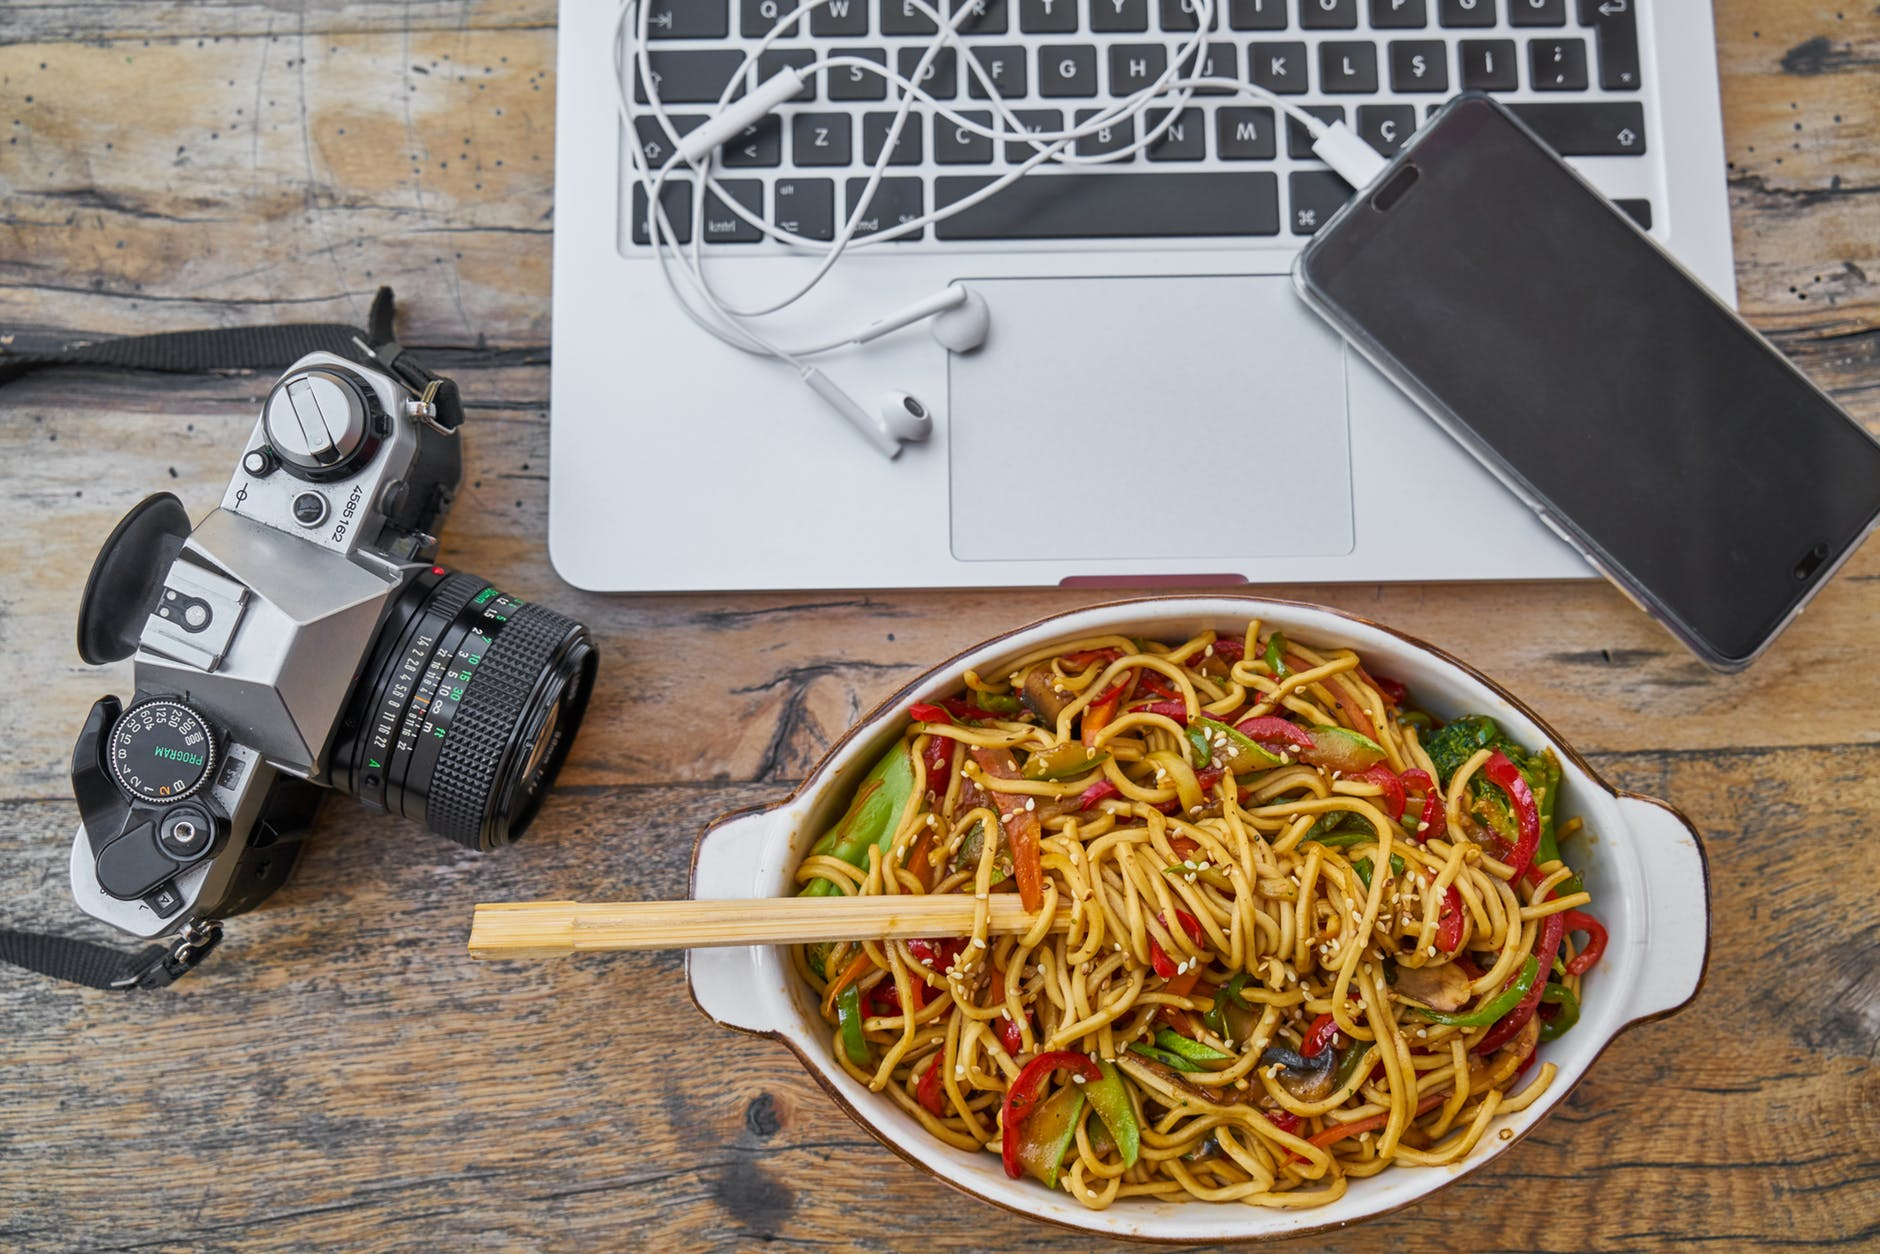 pasta on bowl beside dslr camera and laptop computer